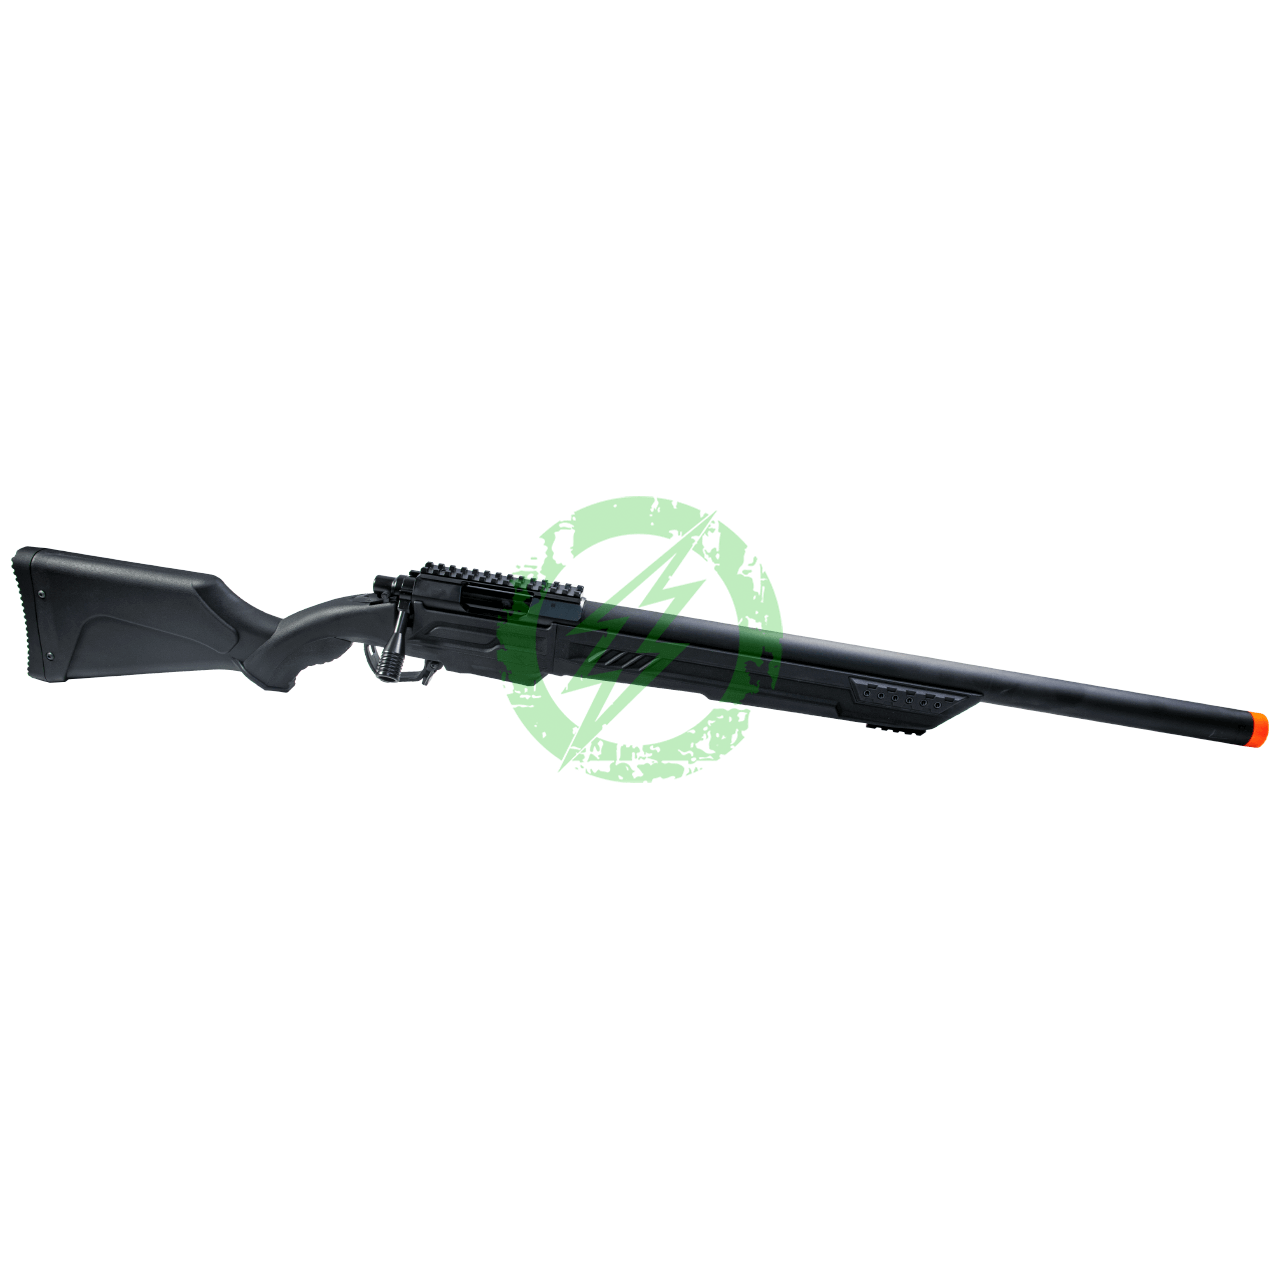 Action Army T11 Sniper Rifle | Black right